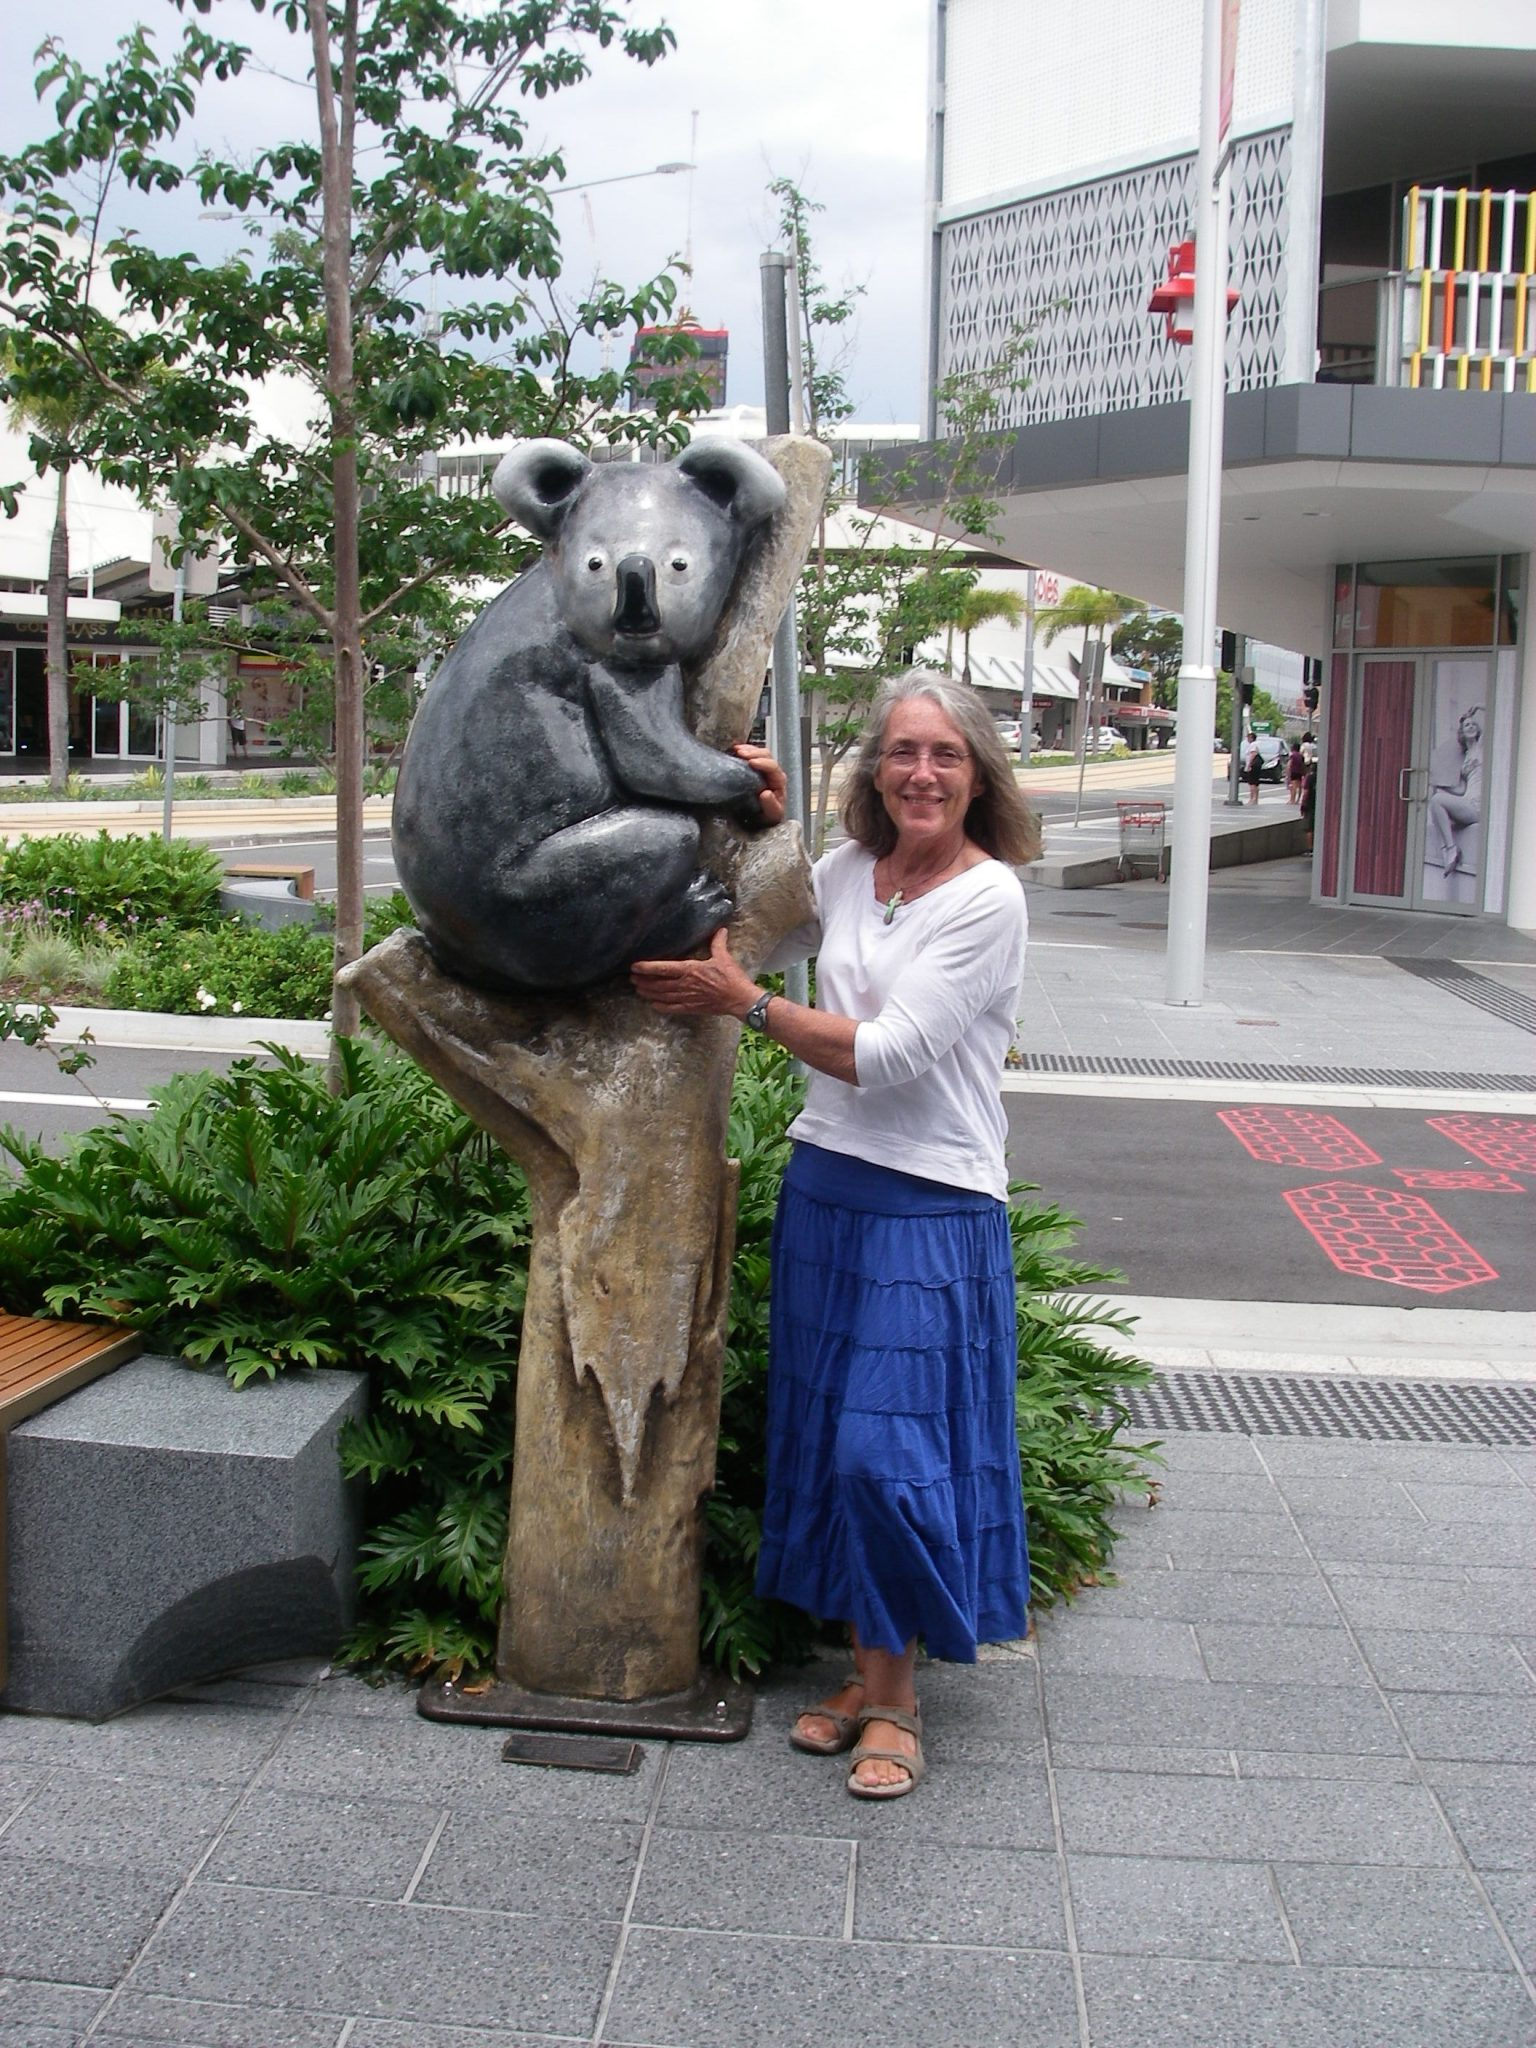 31. Anne and her koala friend in Southport, Australia